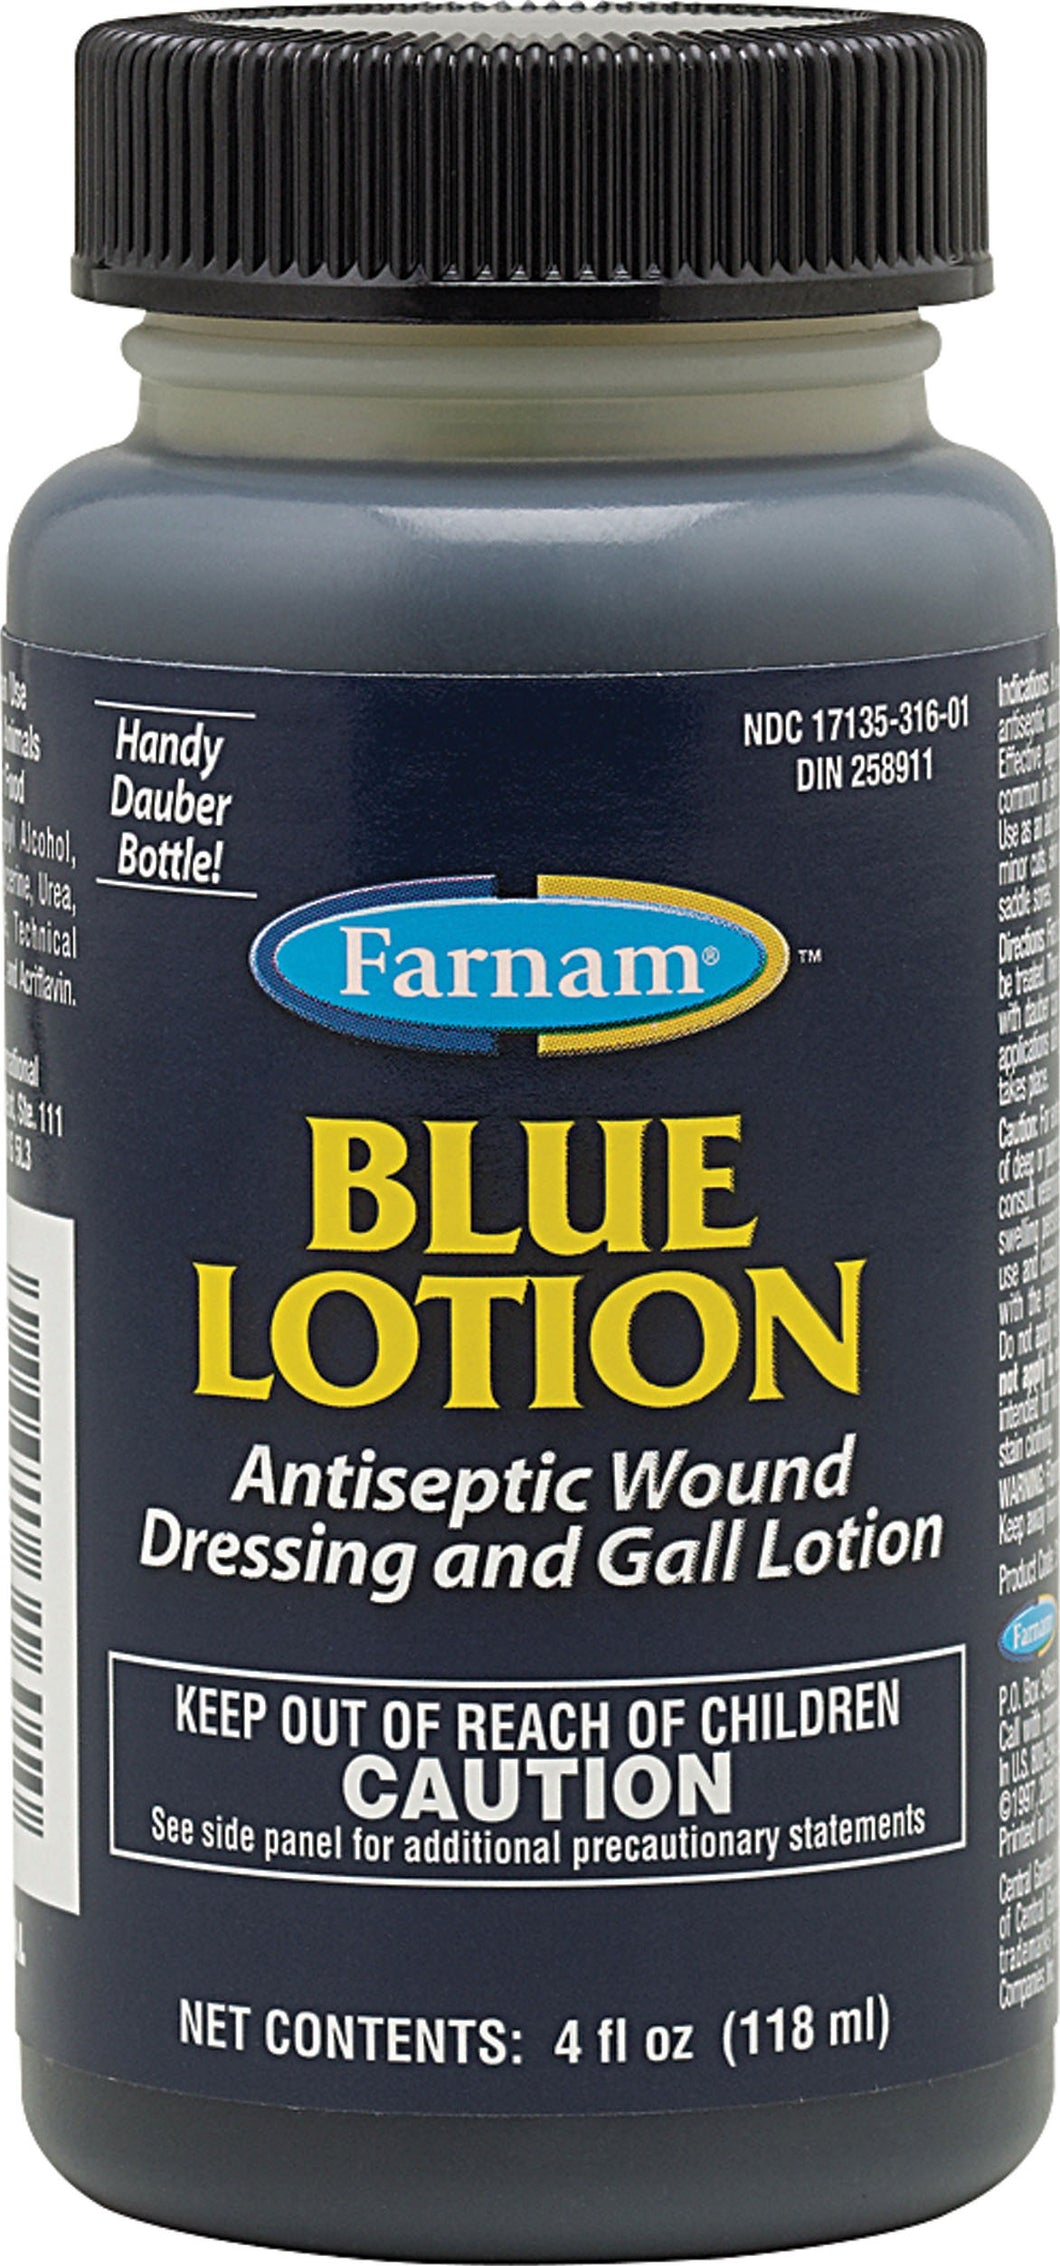 Blue Lotion Antiseptic Wound Dressing